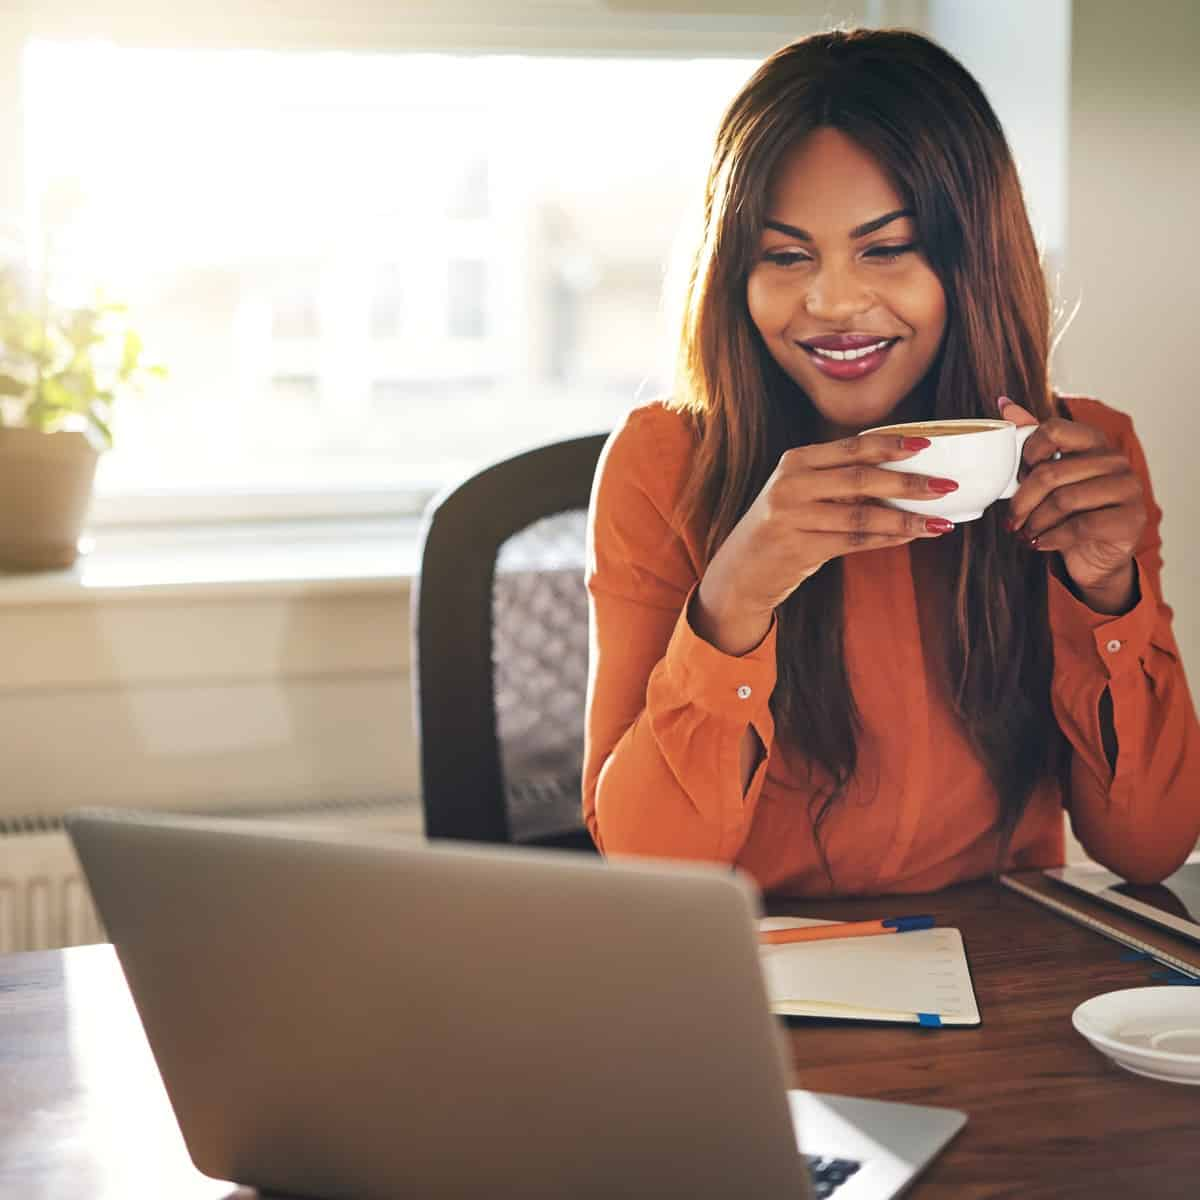 work from home jobs that pay 6 figures